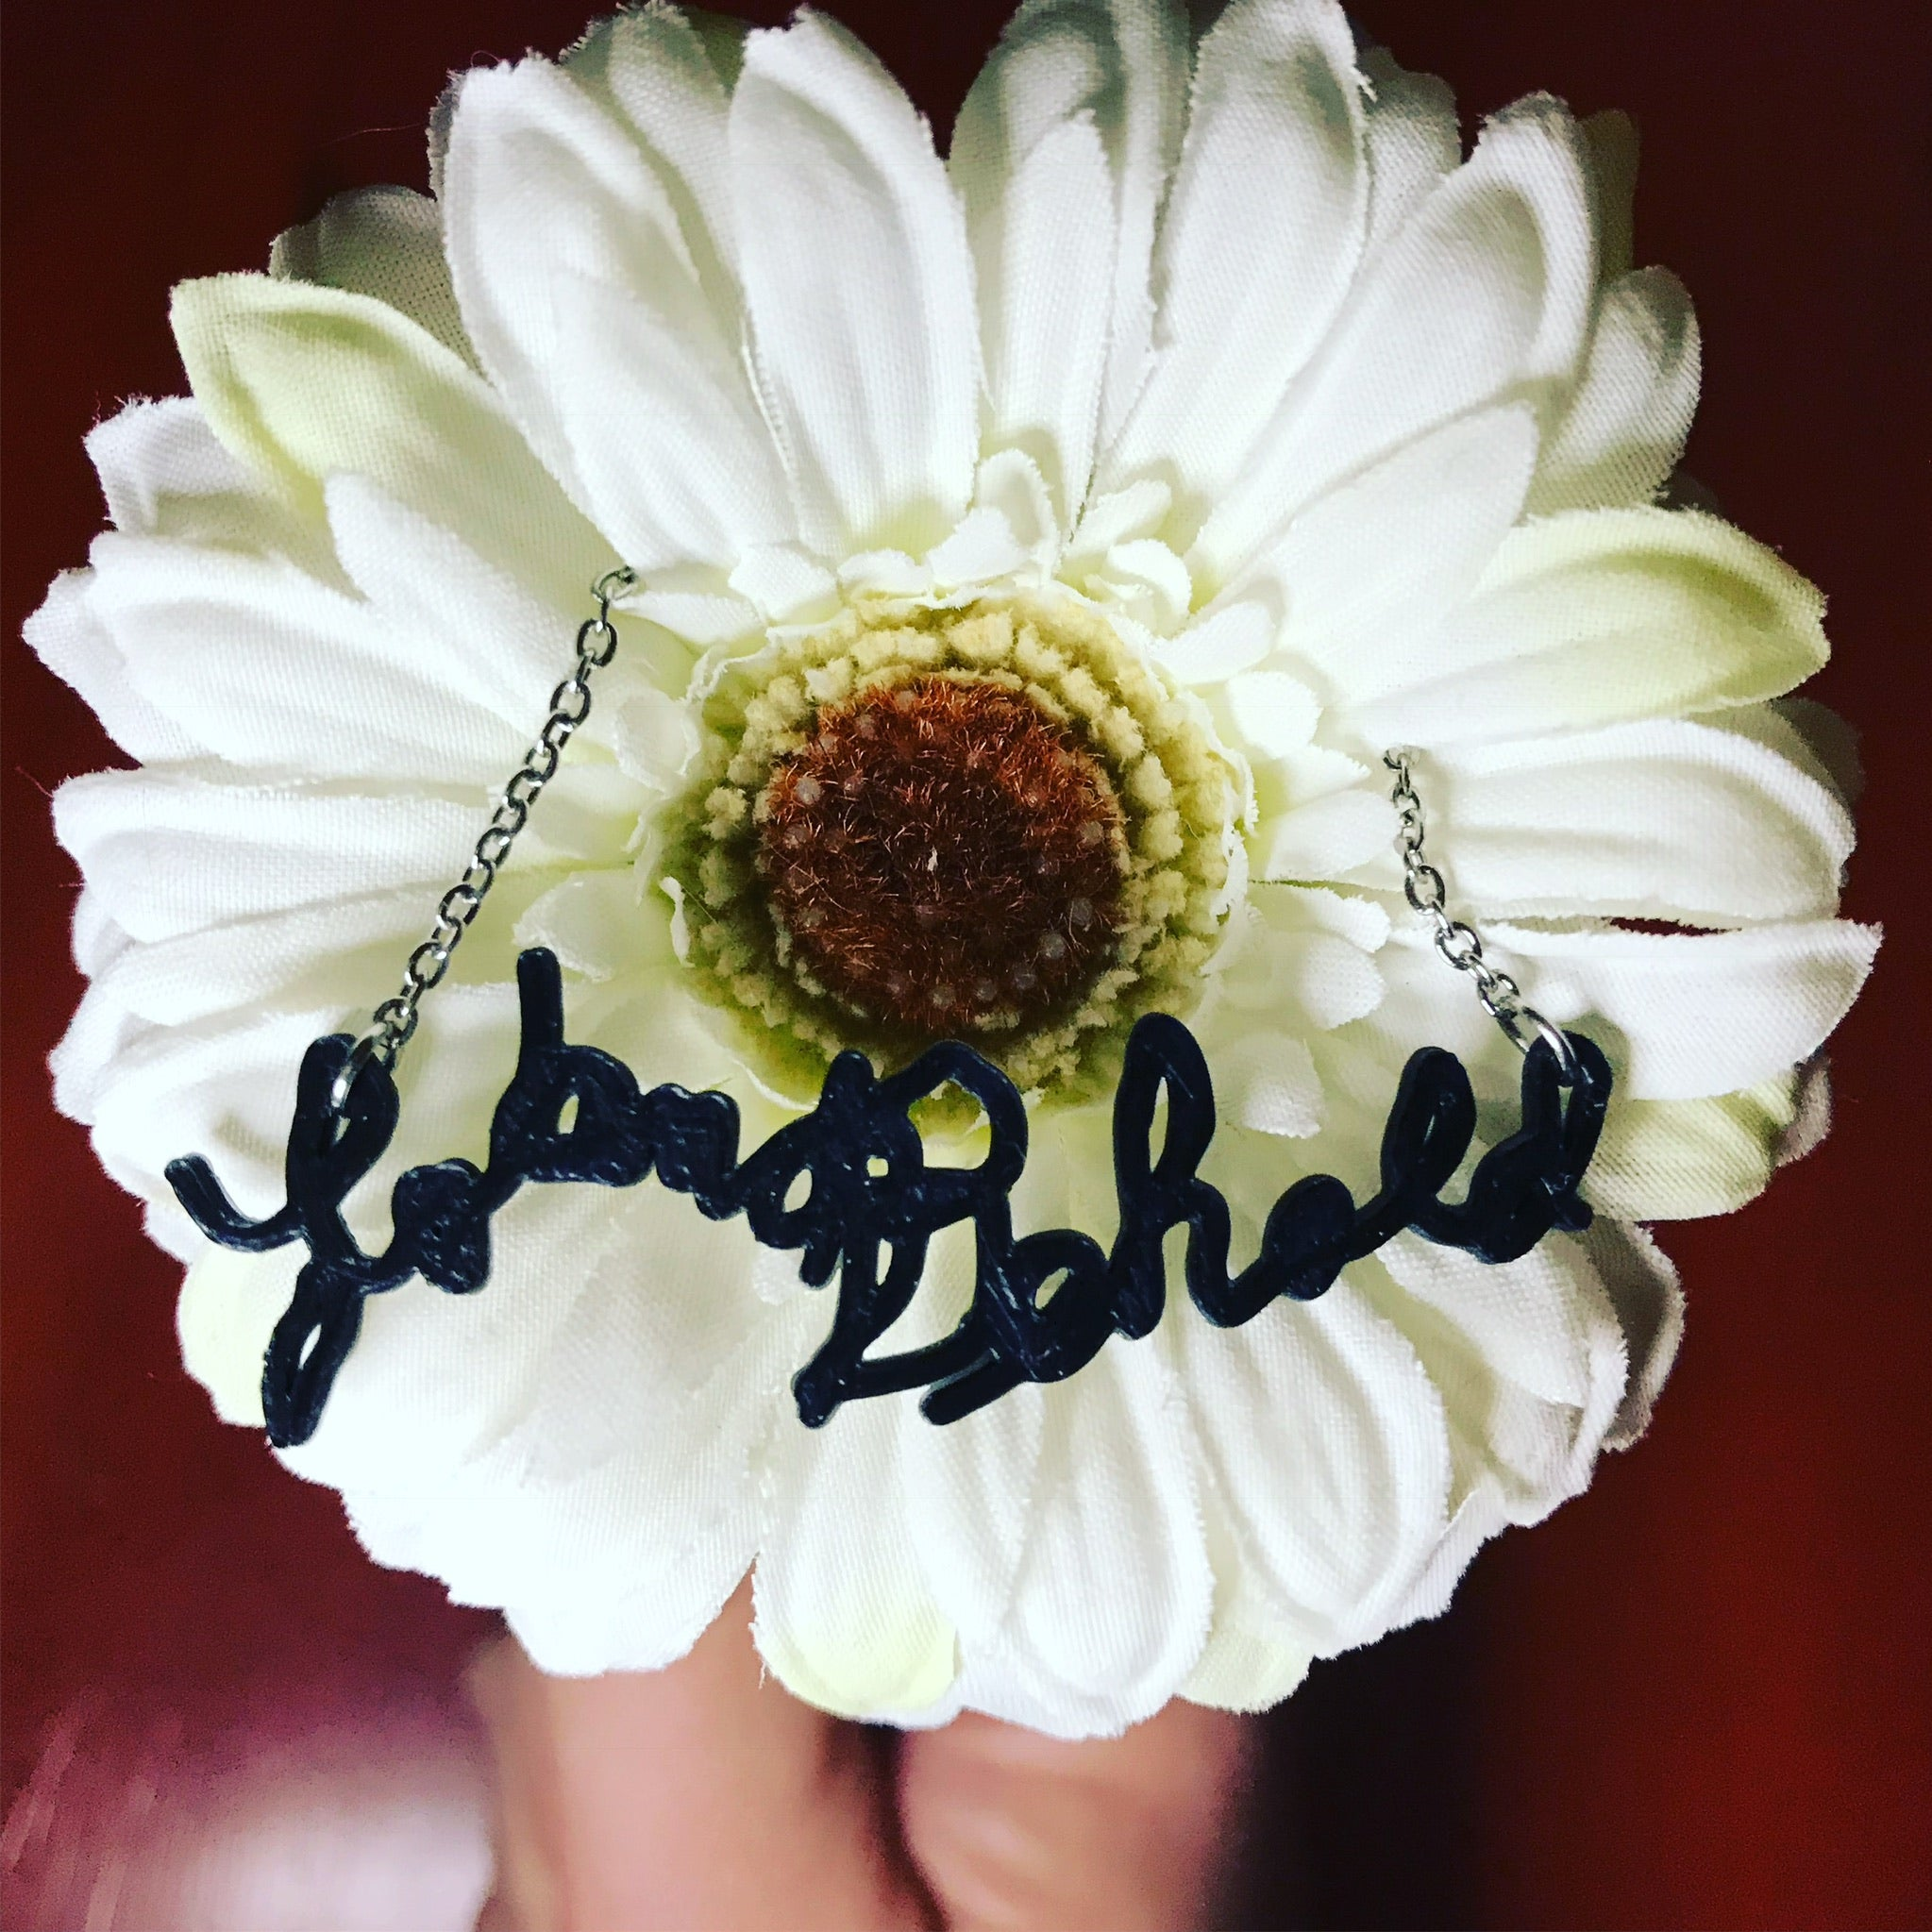 There is a large daisy with a necklace in the middle. The necklace has a 3D printed pendant made from a sample of handwriting.